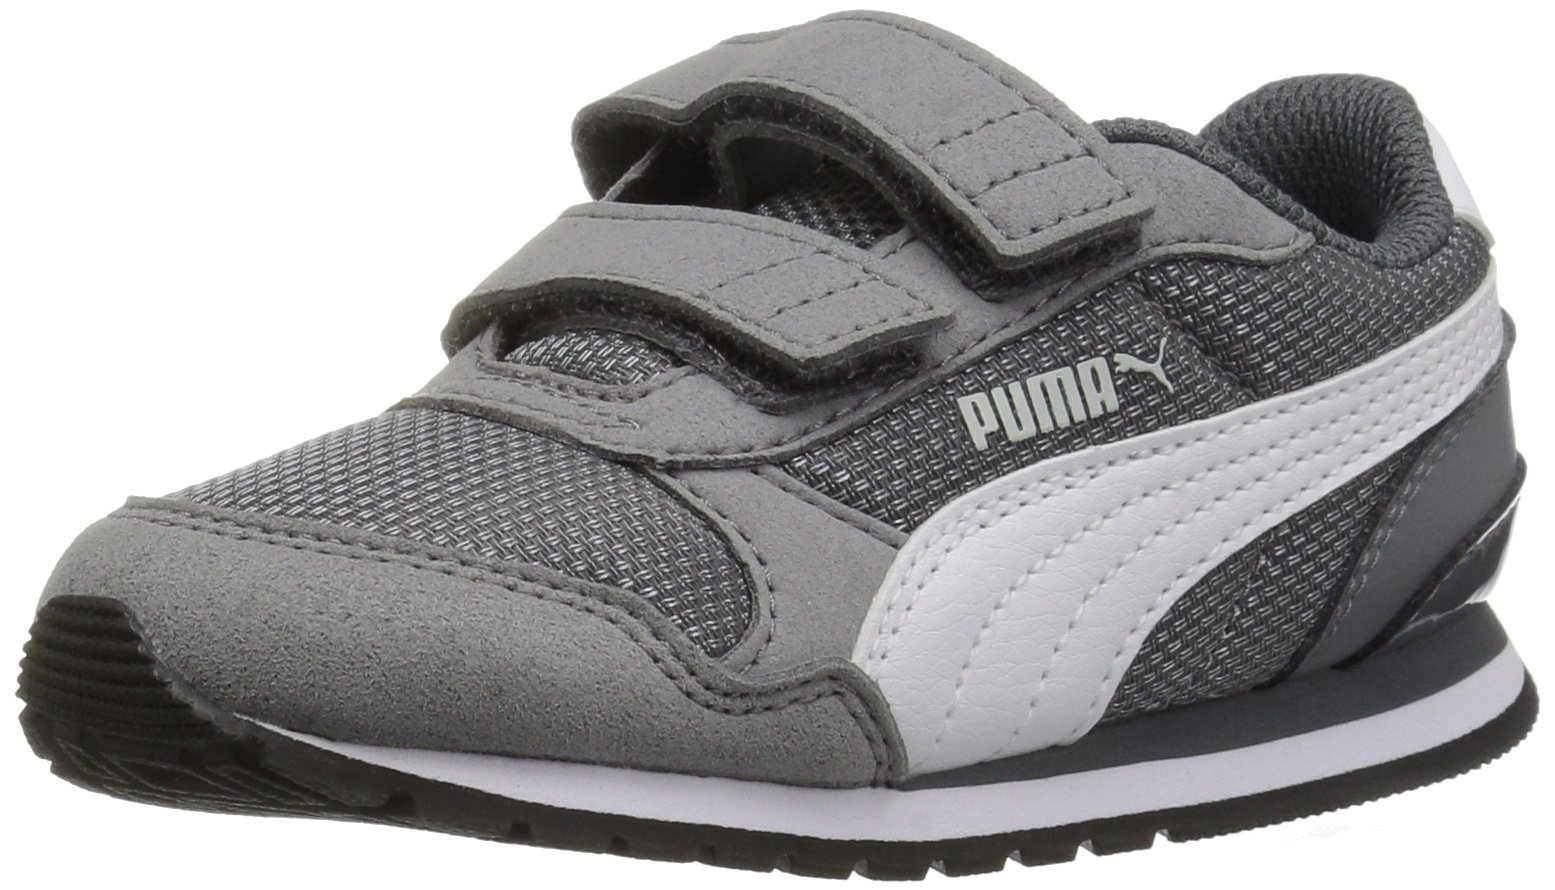 PUMA Baby ST Runner NL Velcro Kids Sneaker, Steel Gray White, 6 M US Toddler